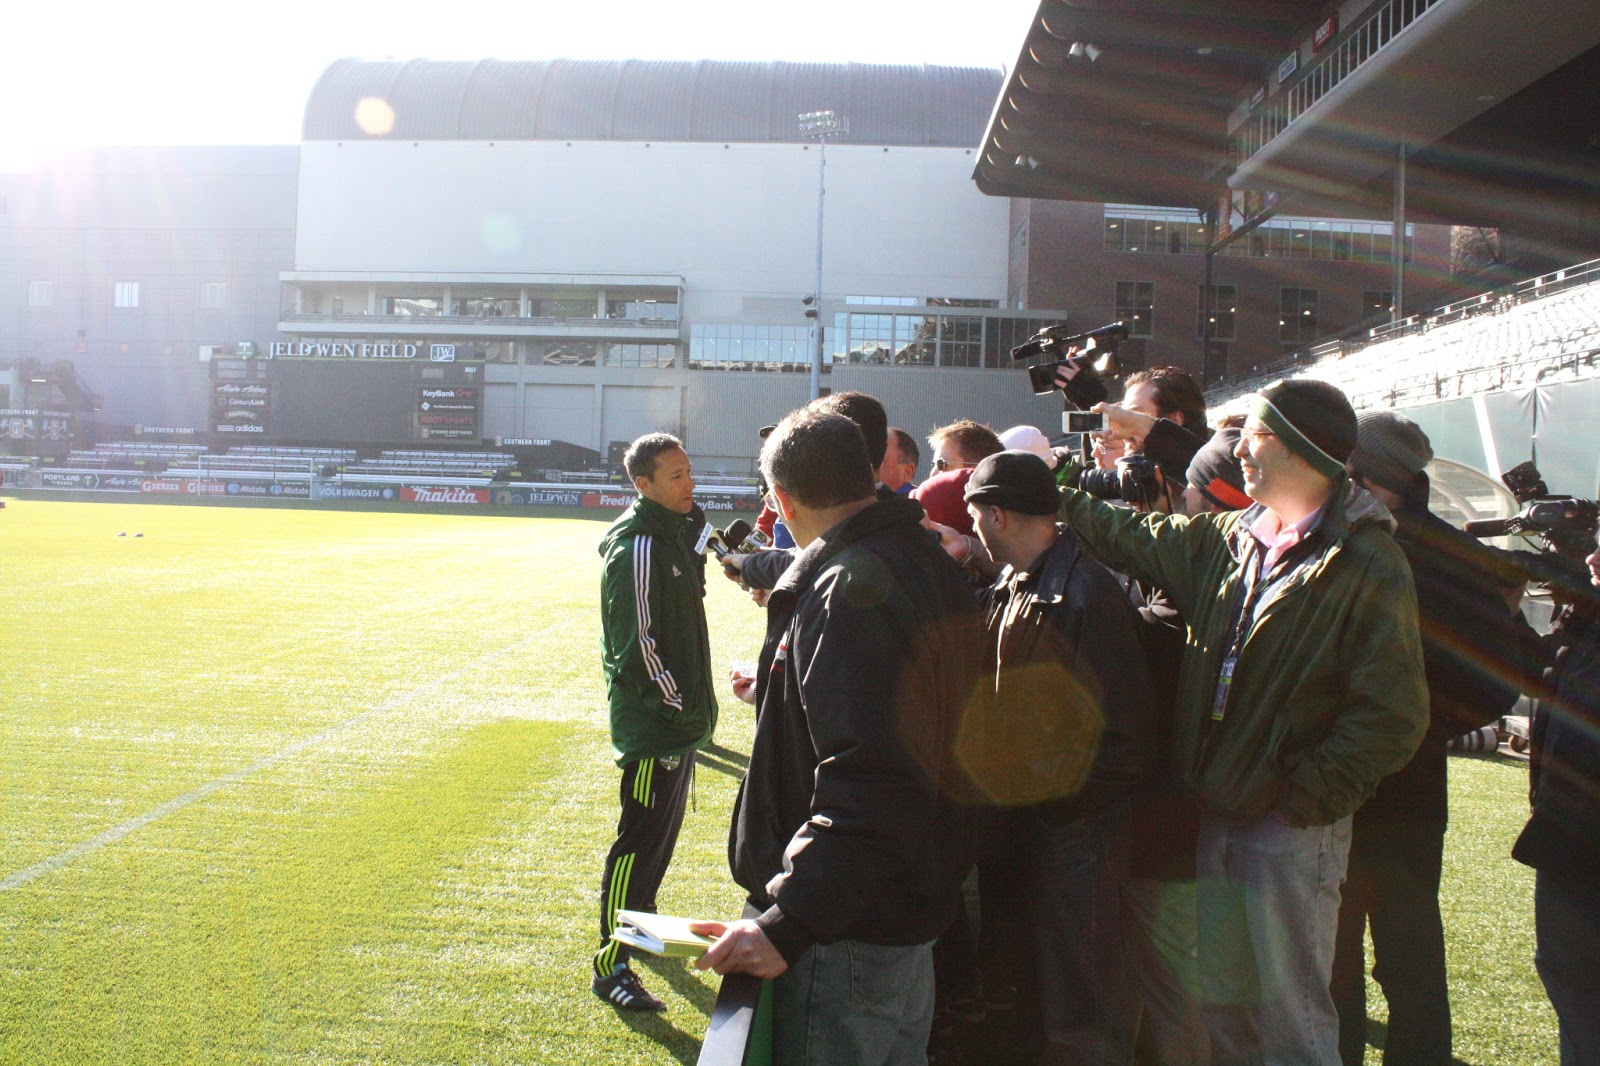 Bunch of media types shoving microphones and cameras in Caleb Porter's face. Lots of lens flare.